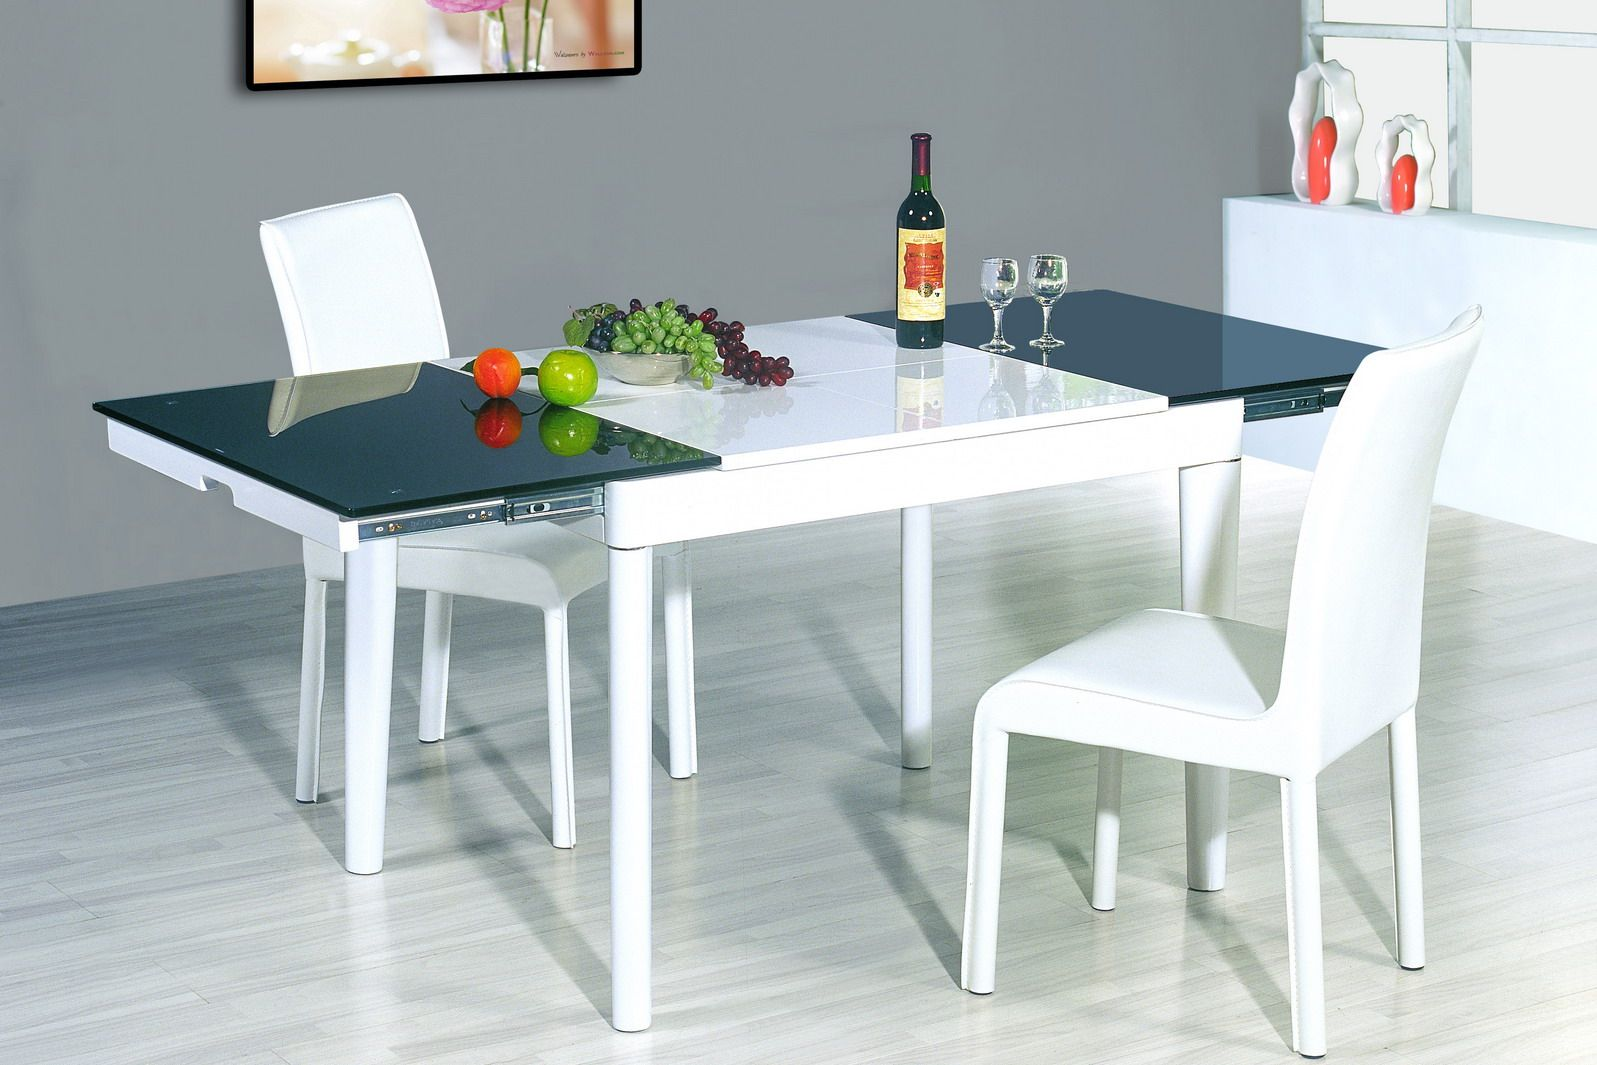 6015 Table 807 Chairs This modern table is stylish, yet simple. it ...